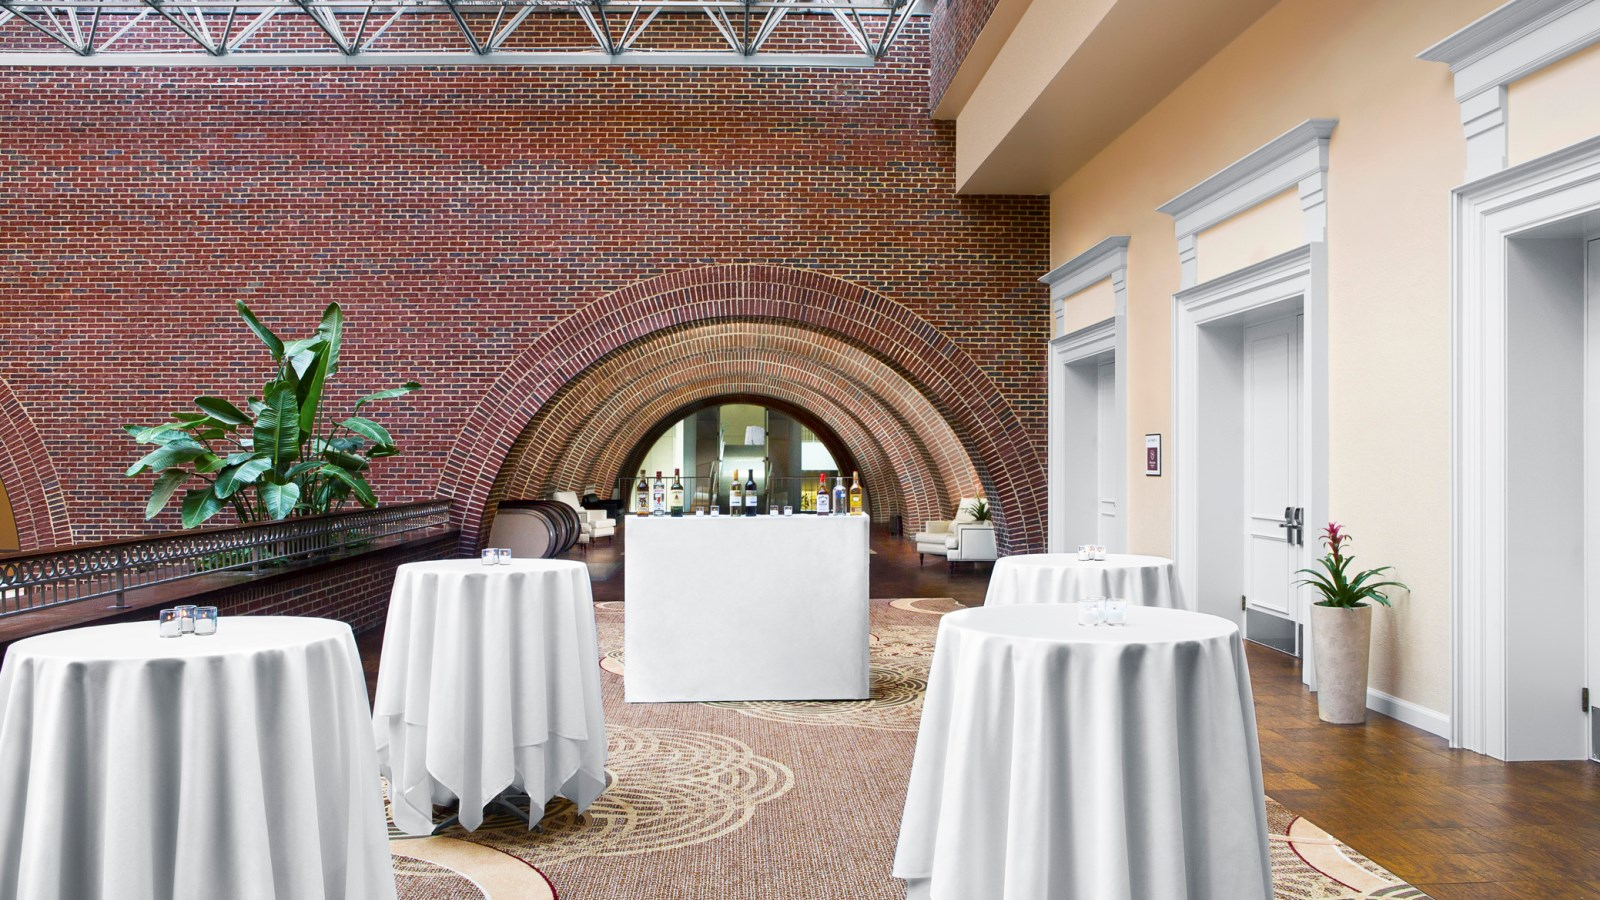 Raleigh Wedding Venues - Sheraton Raleigh Hotel Reception Area